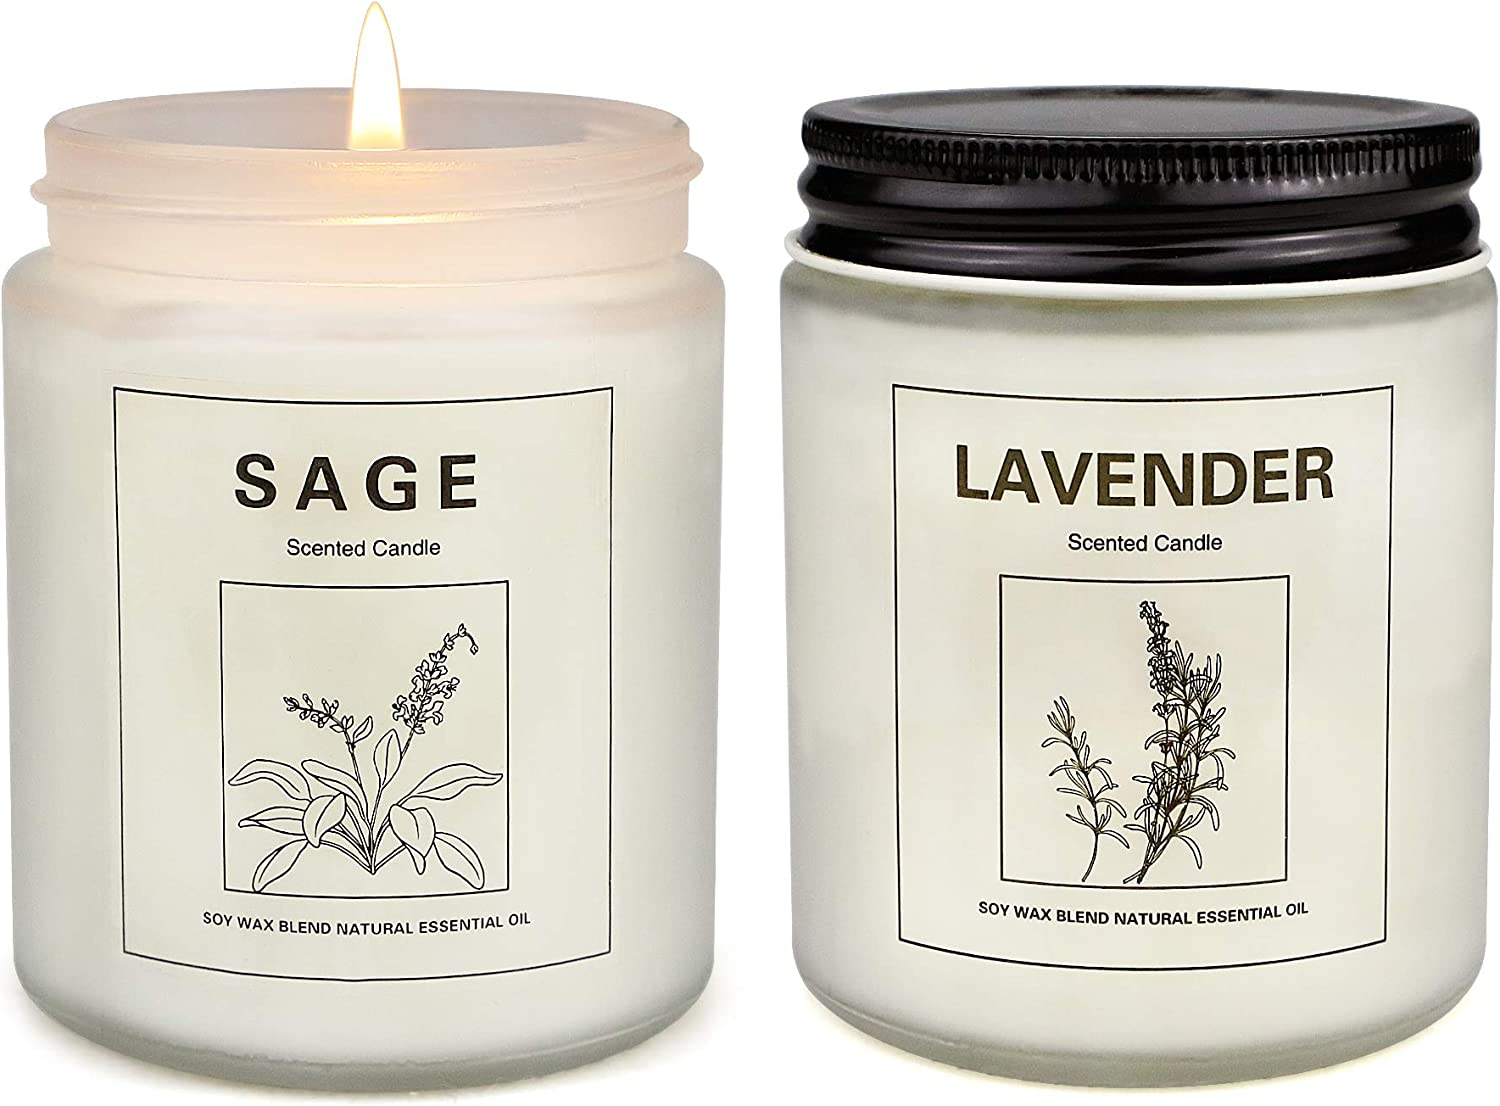 Sage Candles for Home Scented, Aromatherapy Lavender Candle, Soy Wax Candle Set 2 Pack, Women Mother's Day Gift with Strongly Fragrance Jar Candles